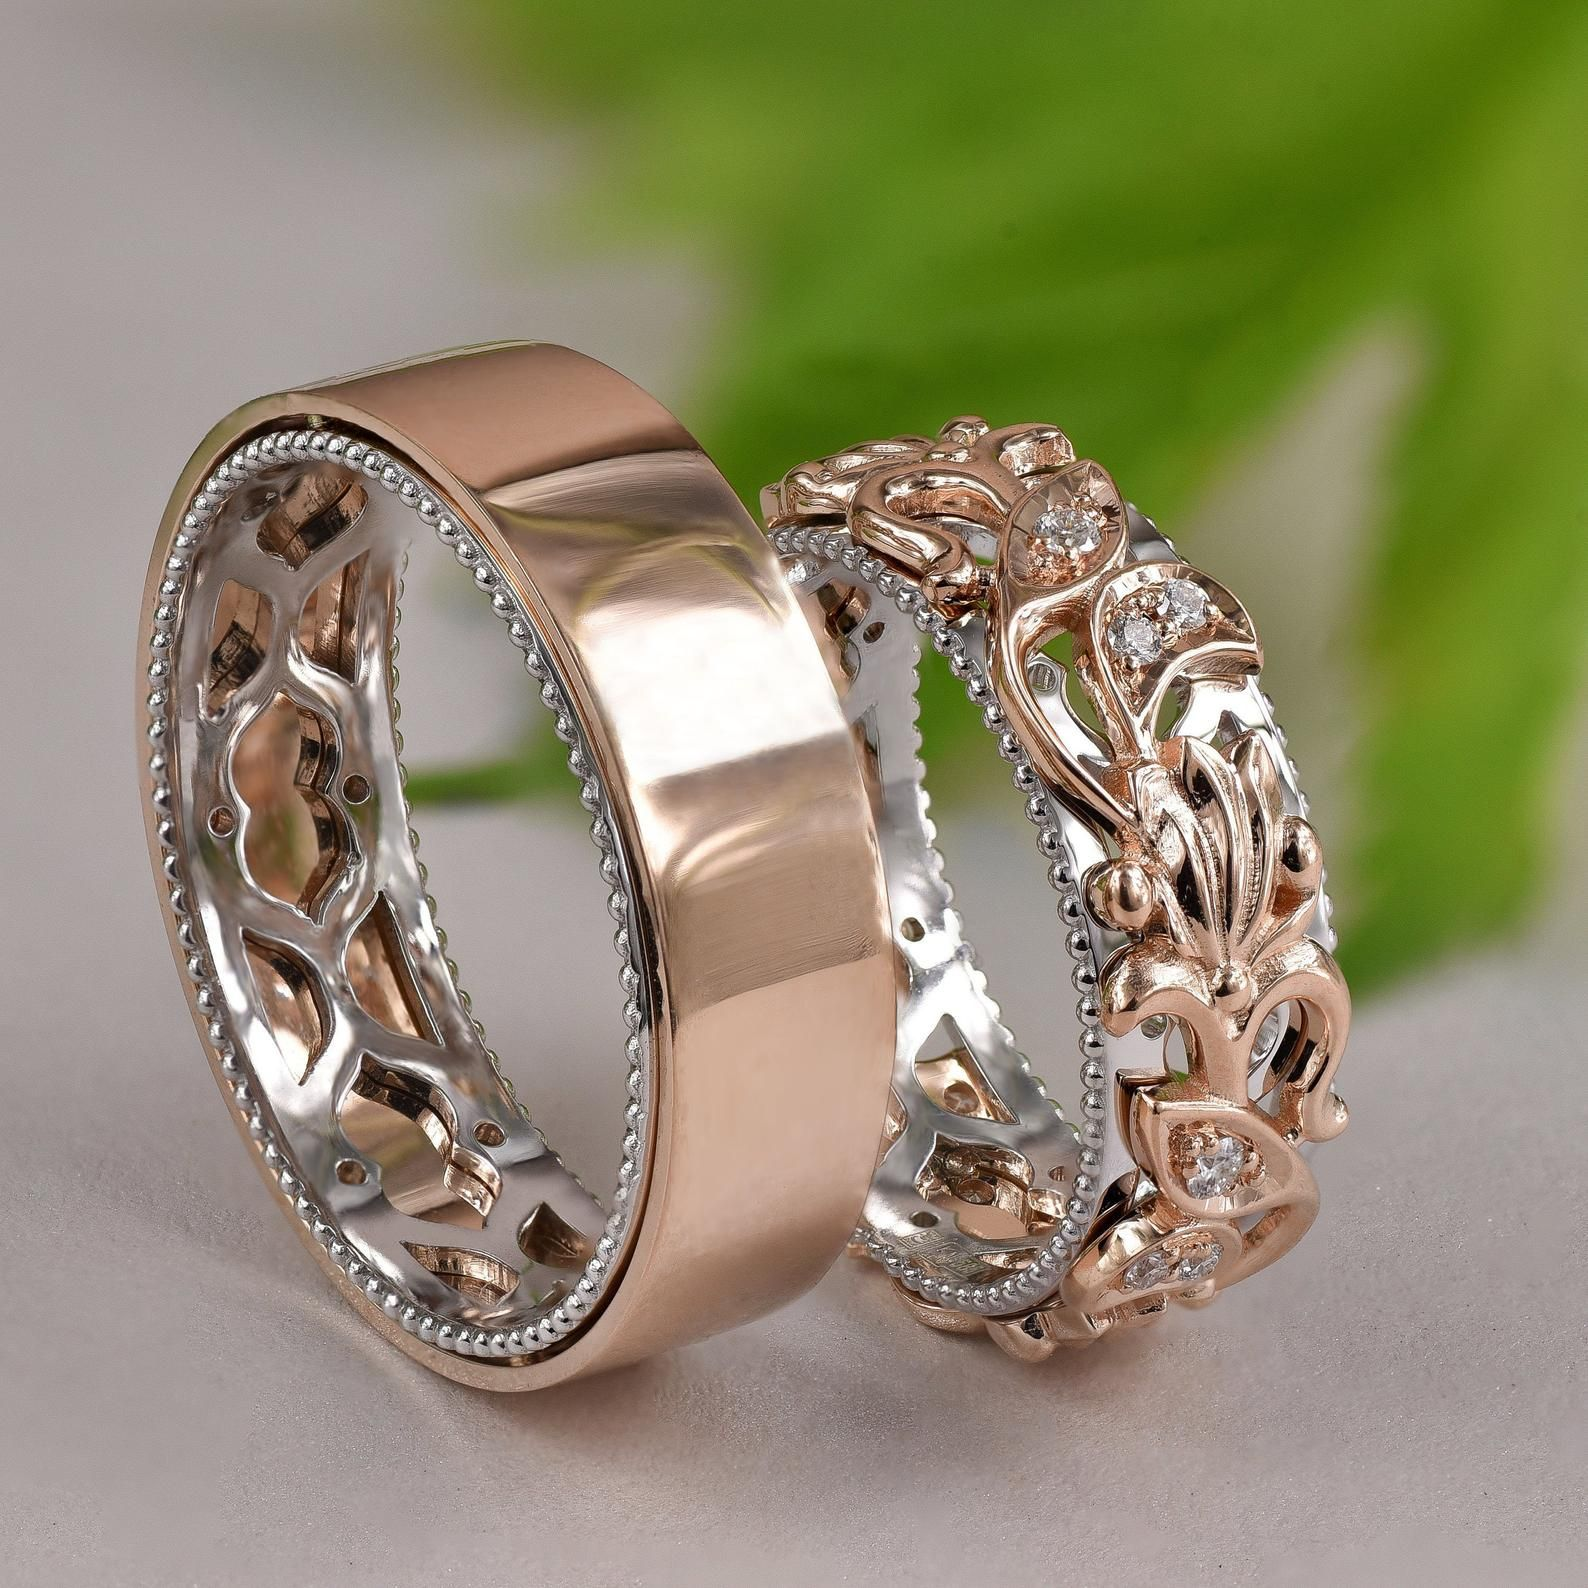 Matching Wedding Bands, Wedding Band Set His and Hers, His